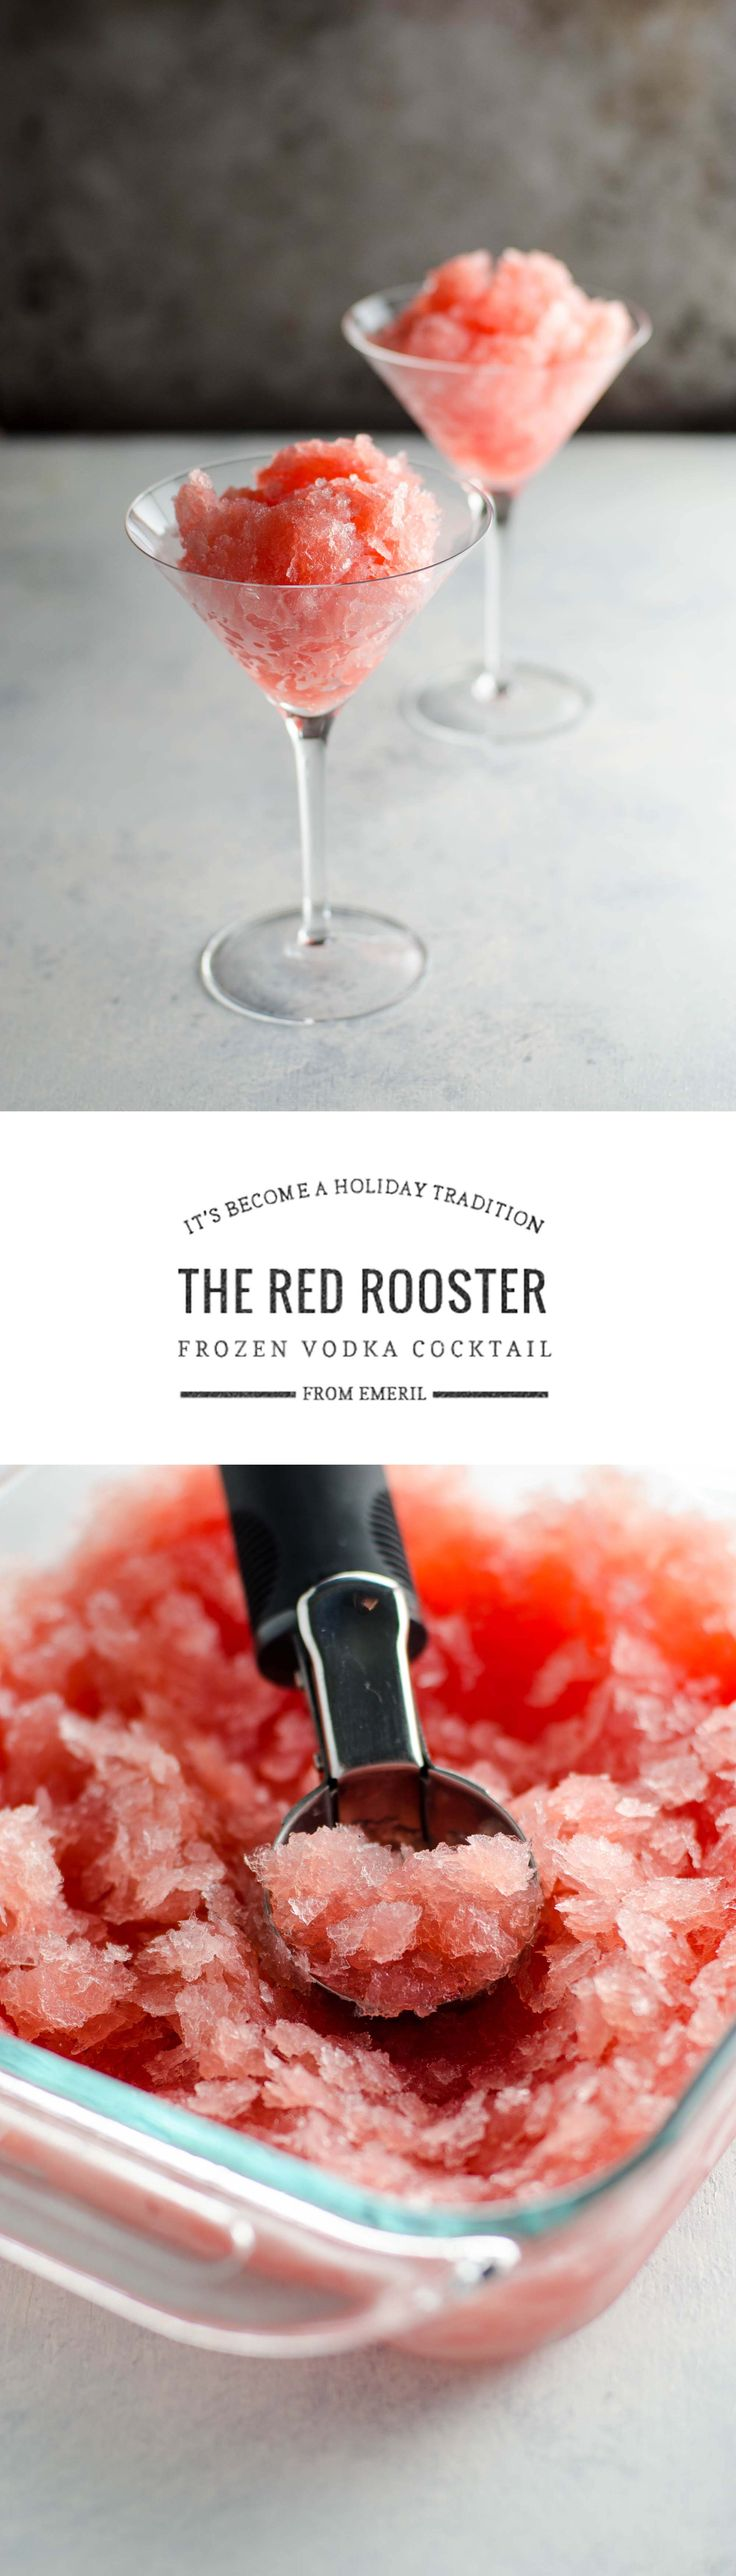 The Red Rooster, a frozen vodka cocktail recipe adapted from Emeril Lagasse, is make-ahead friendly, easy and delicious. Make it a holiday tradition!